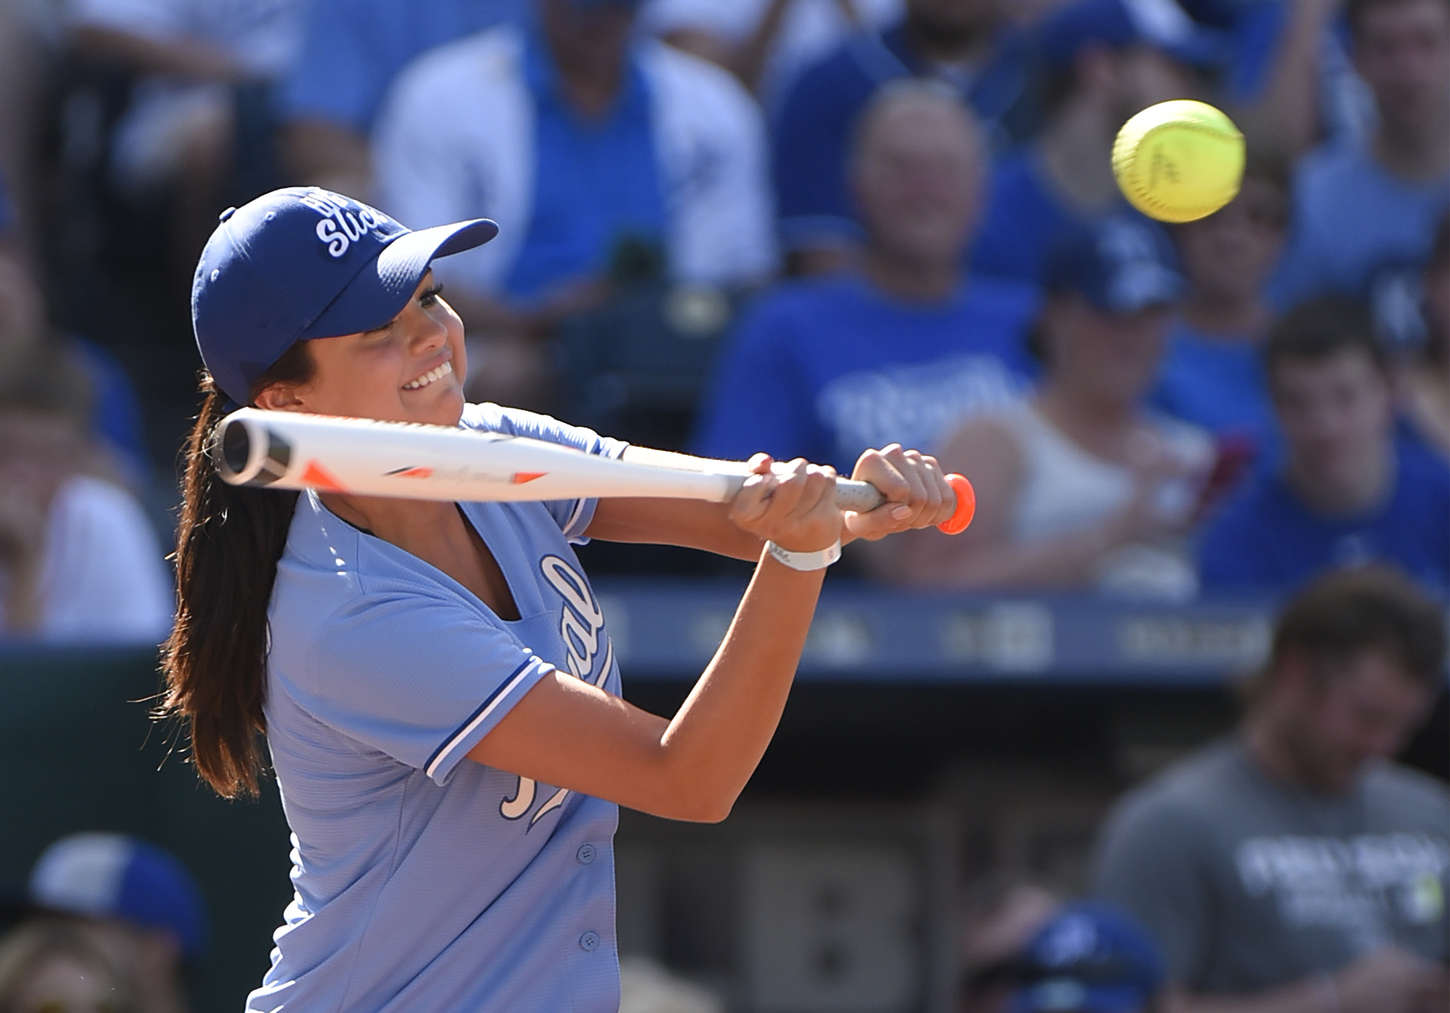 Selena Gomez enjoys the Big Slick Celebrity Softball Game in Kansas City